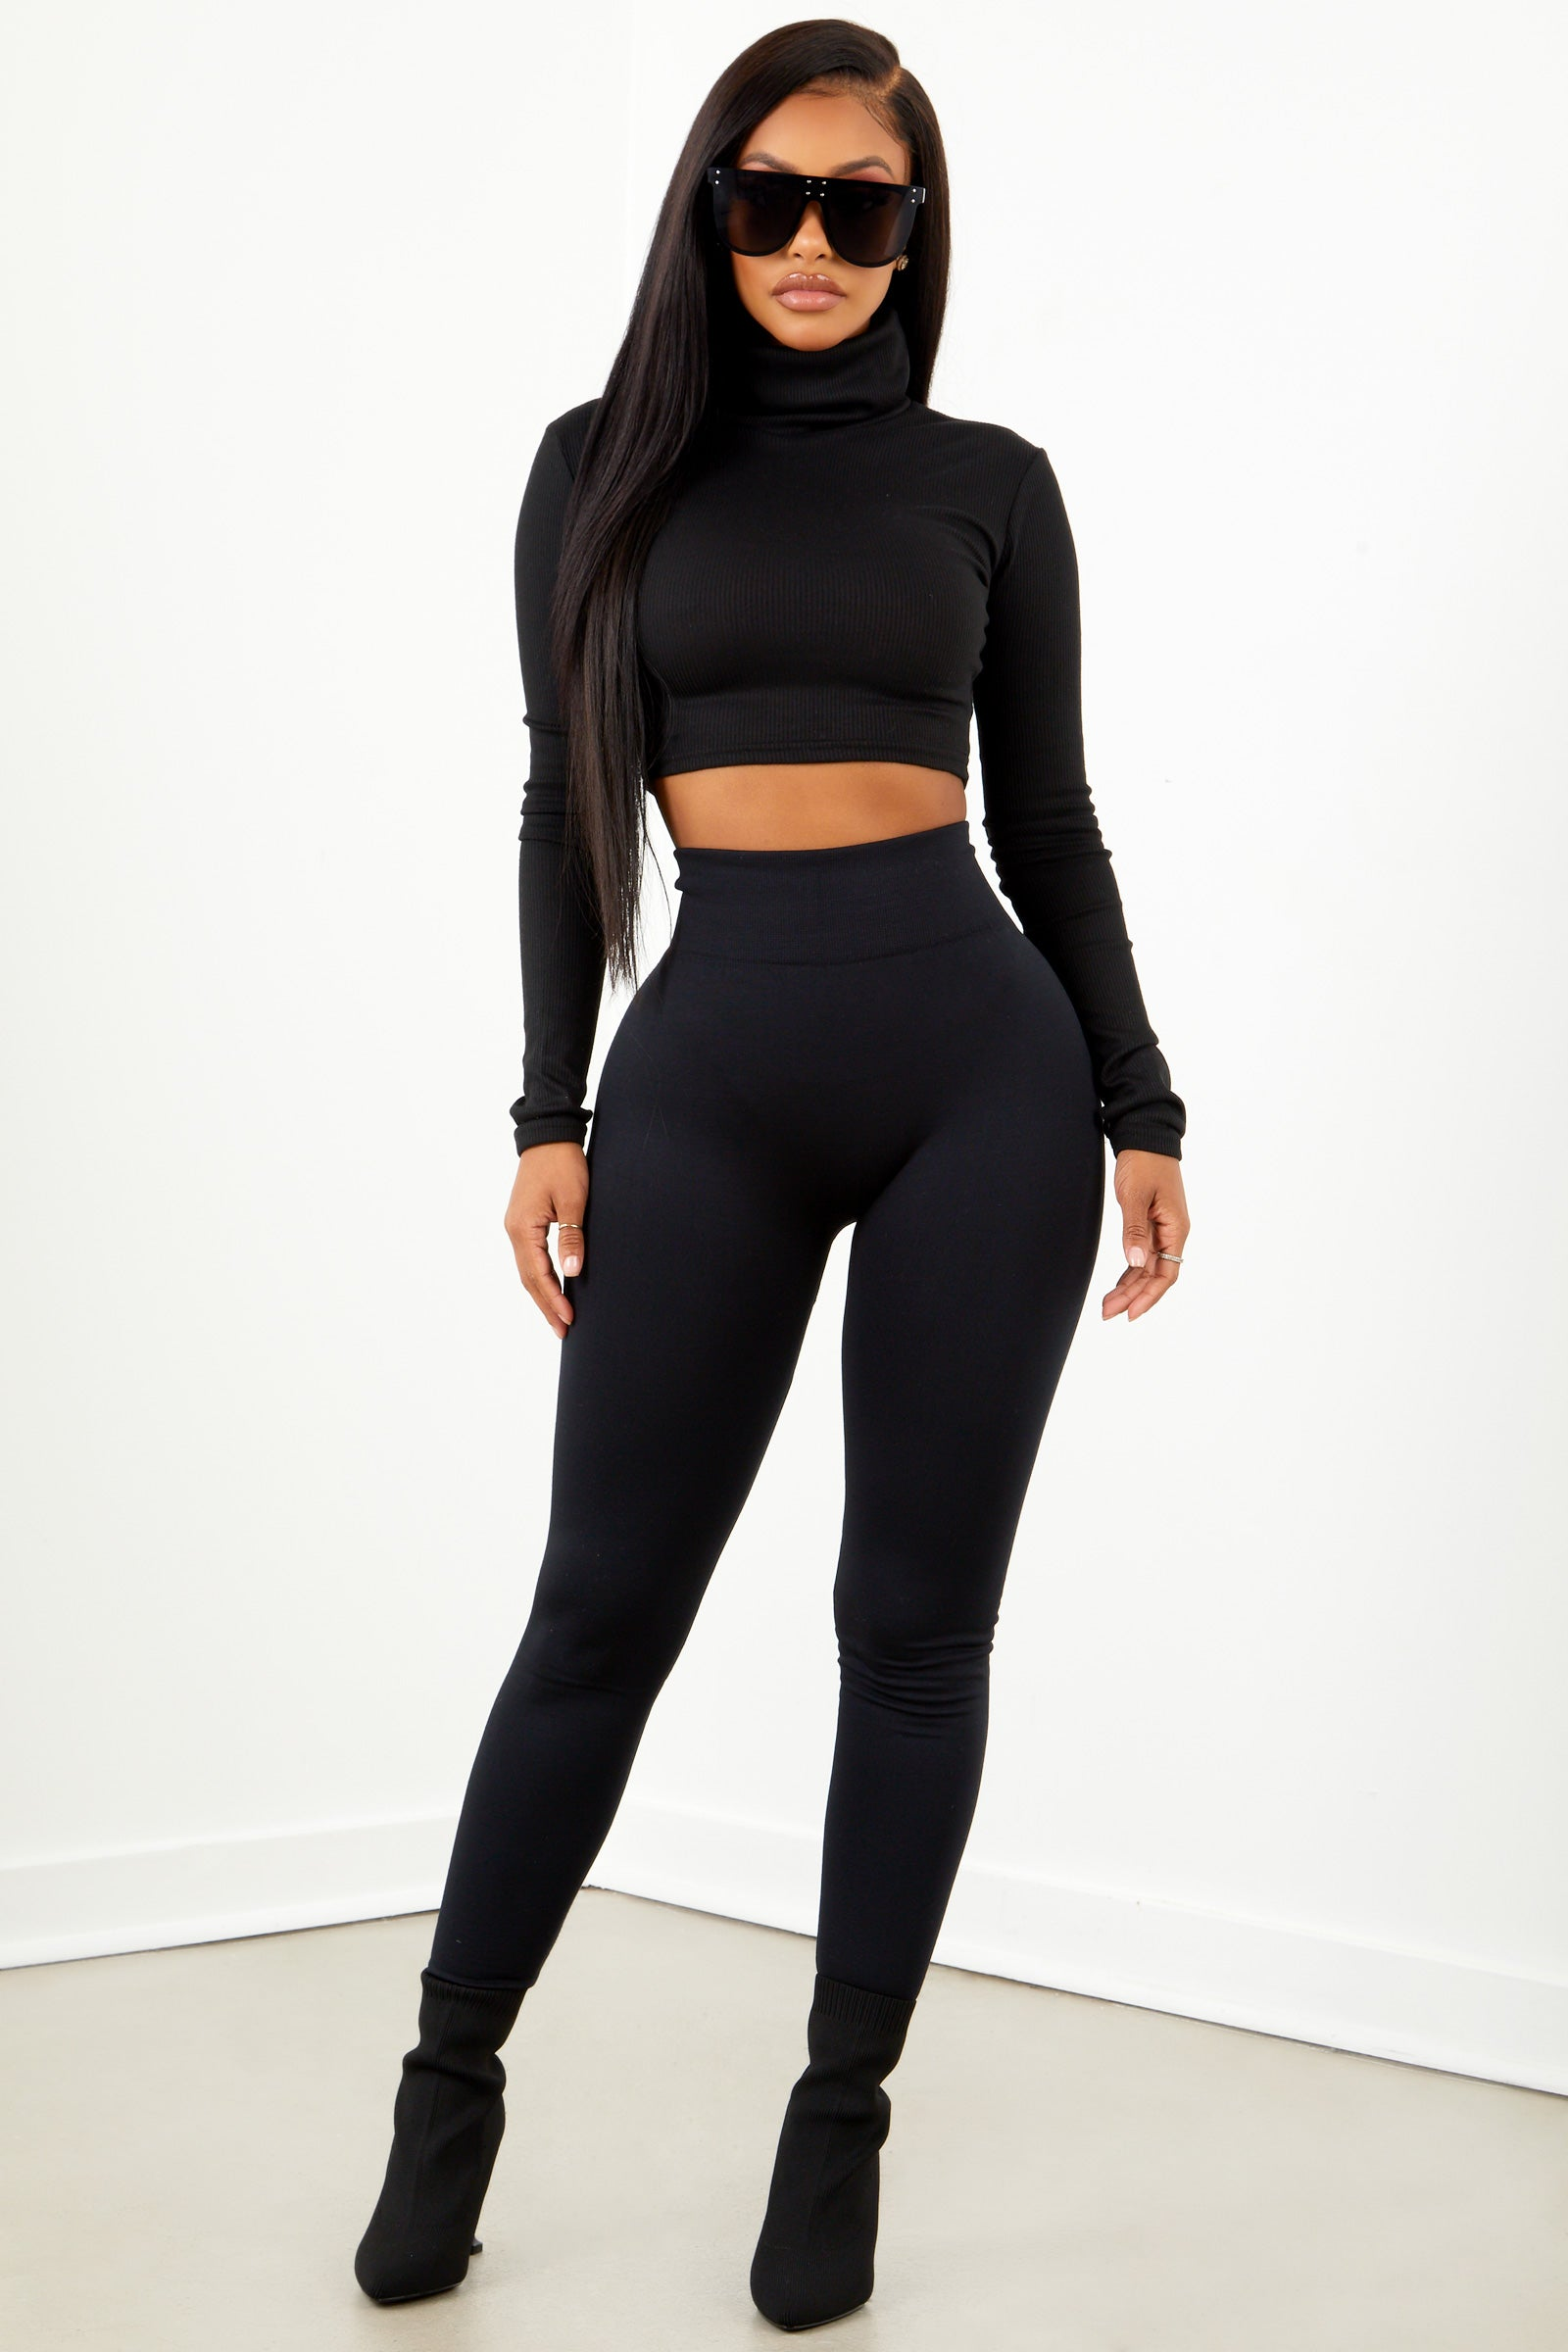 Black Basic High Waist Fleece Leggings